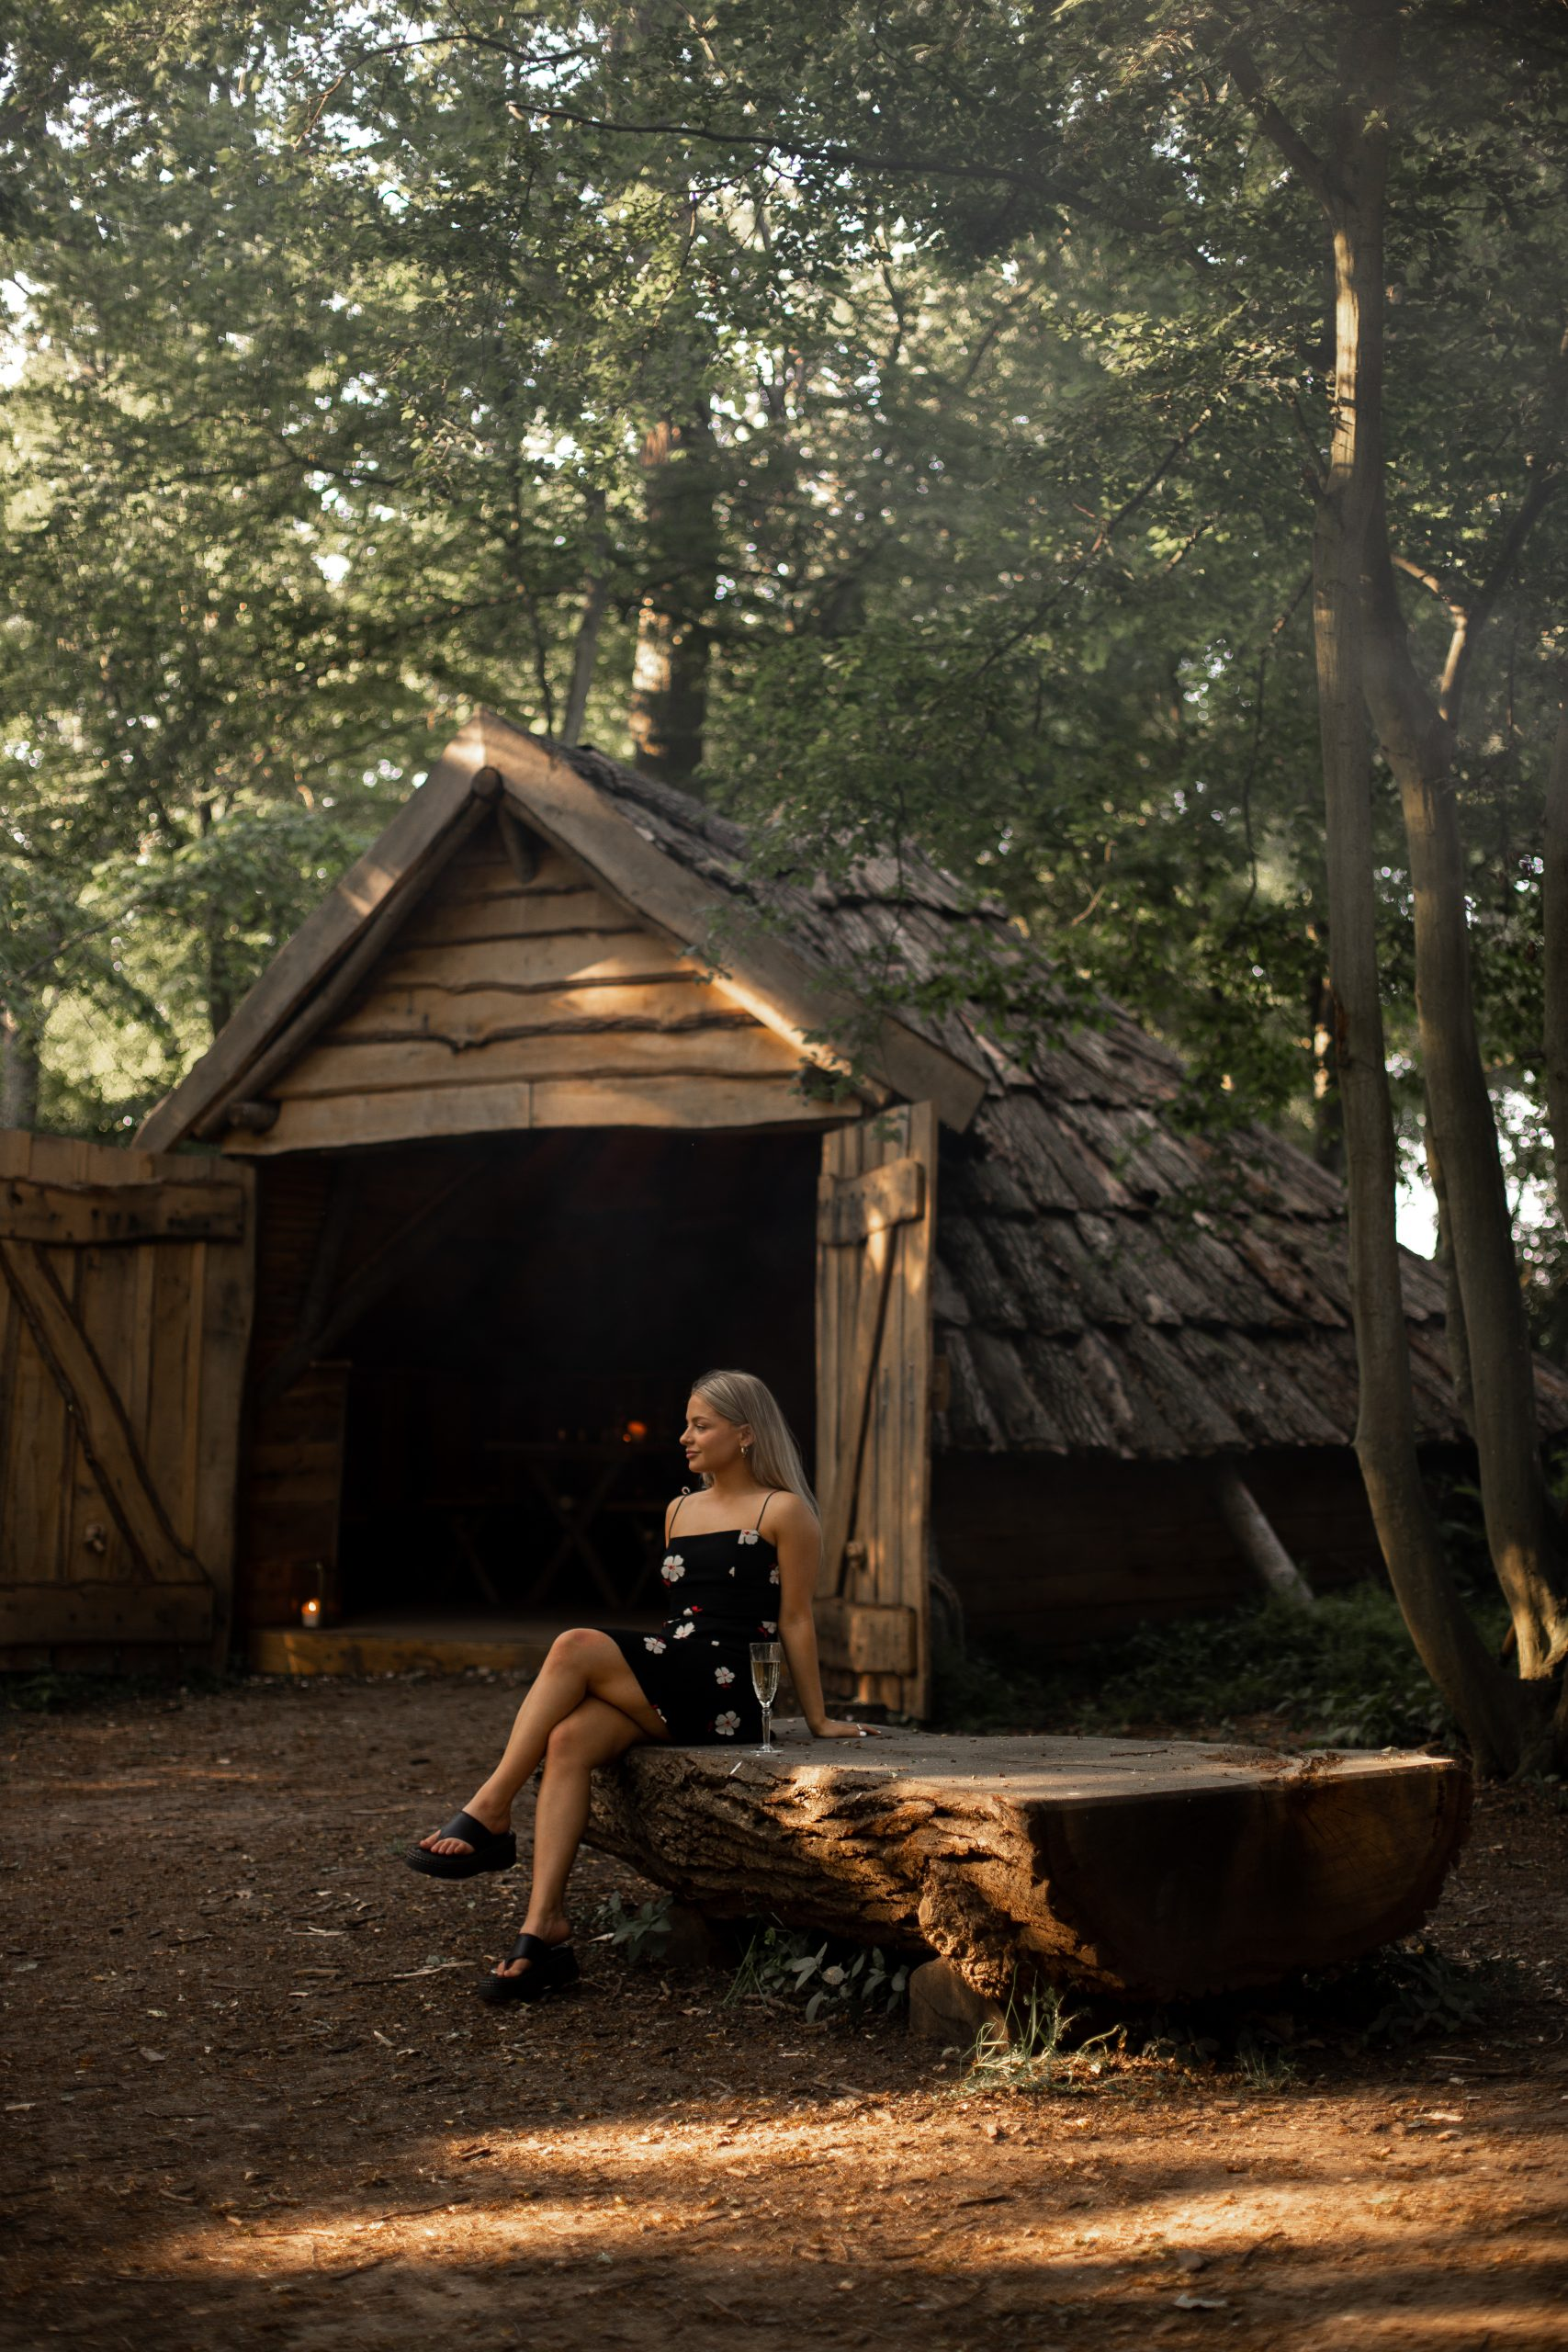 Chloe sitting on a log bench with arms stretched back. There is a wooden cabin in the background